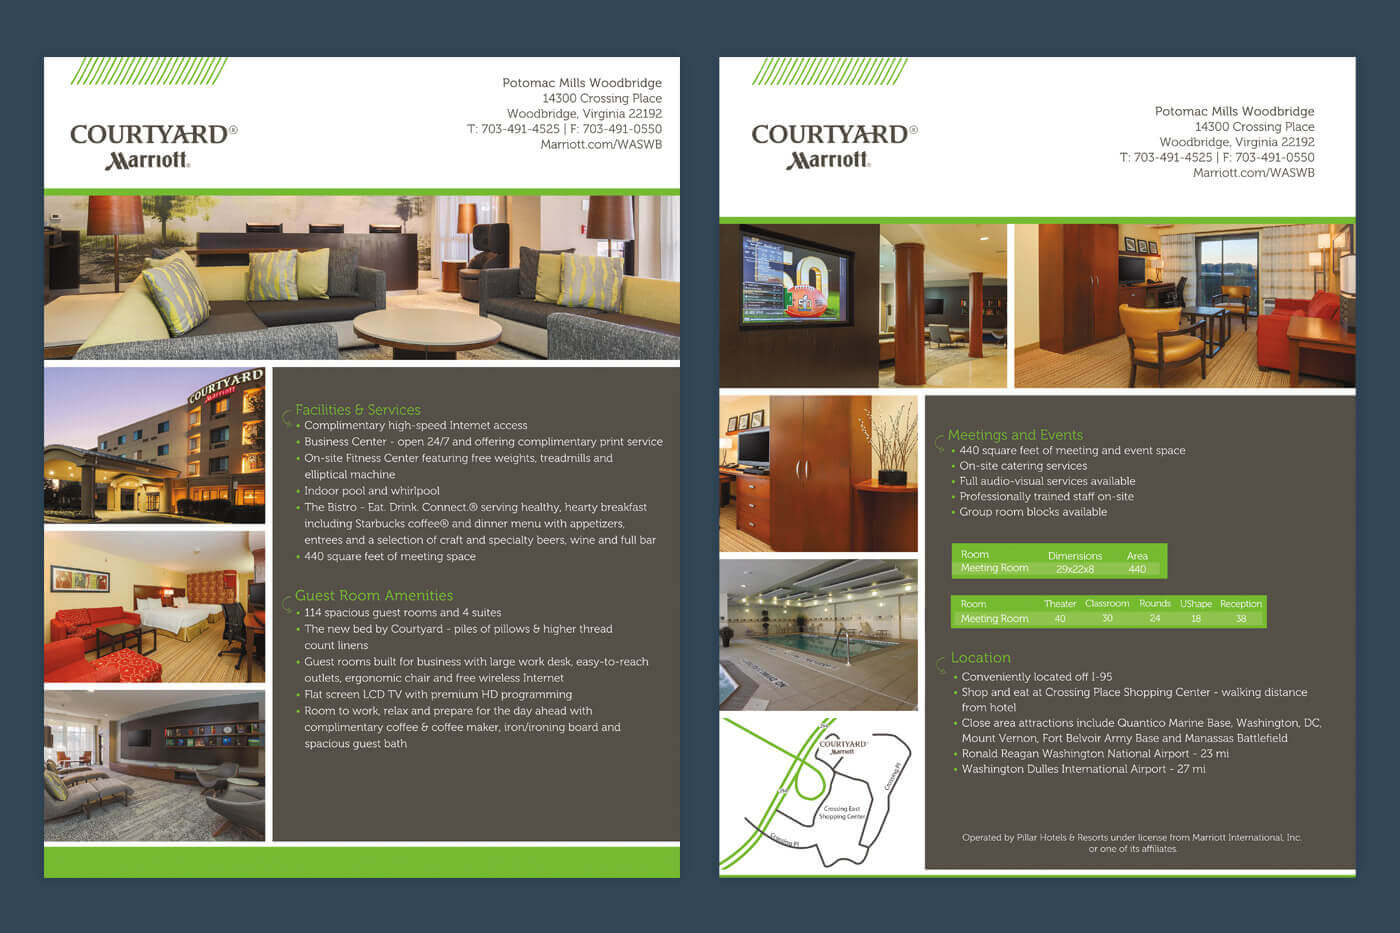 Marketing Collateral - Courtyard Potomac Mills Woodbridge Factsheet